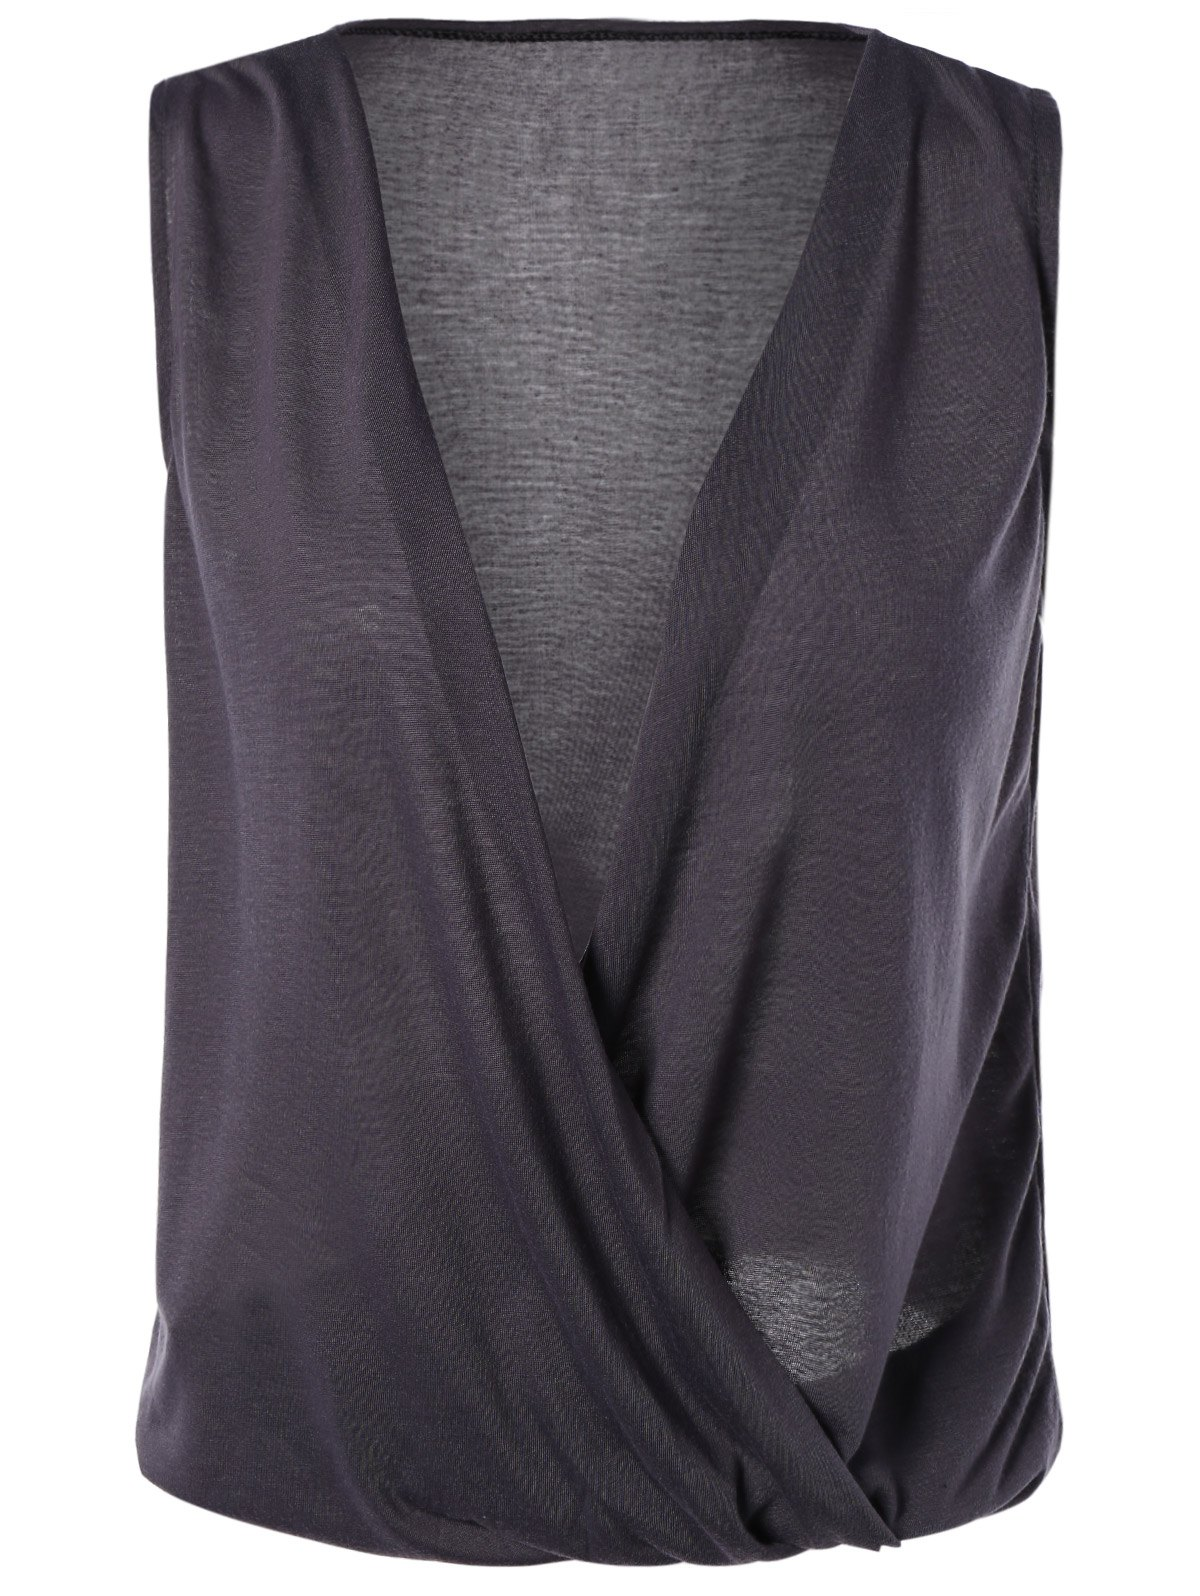 Fashionable Women's Plunging Neck Cap Sleeve Wrap Top